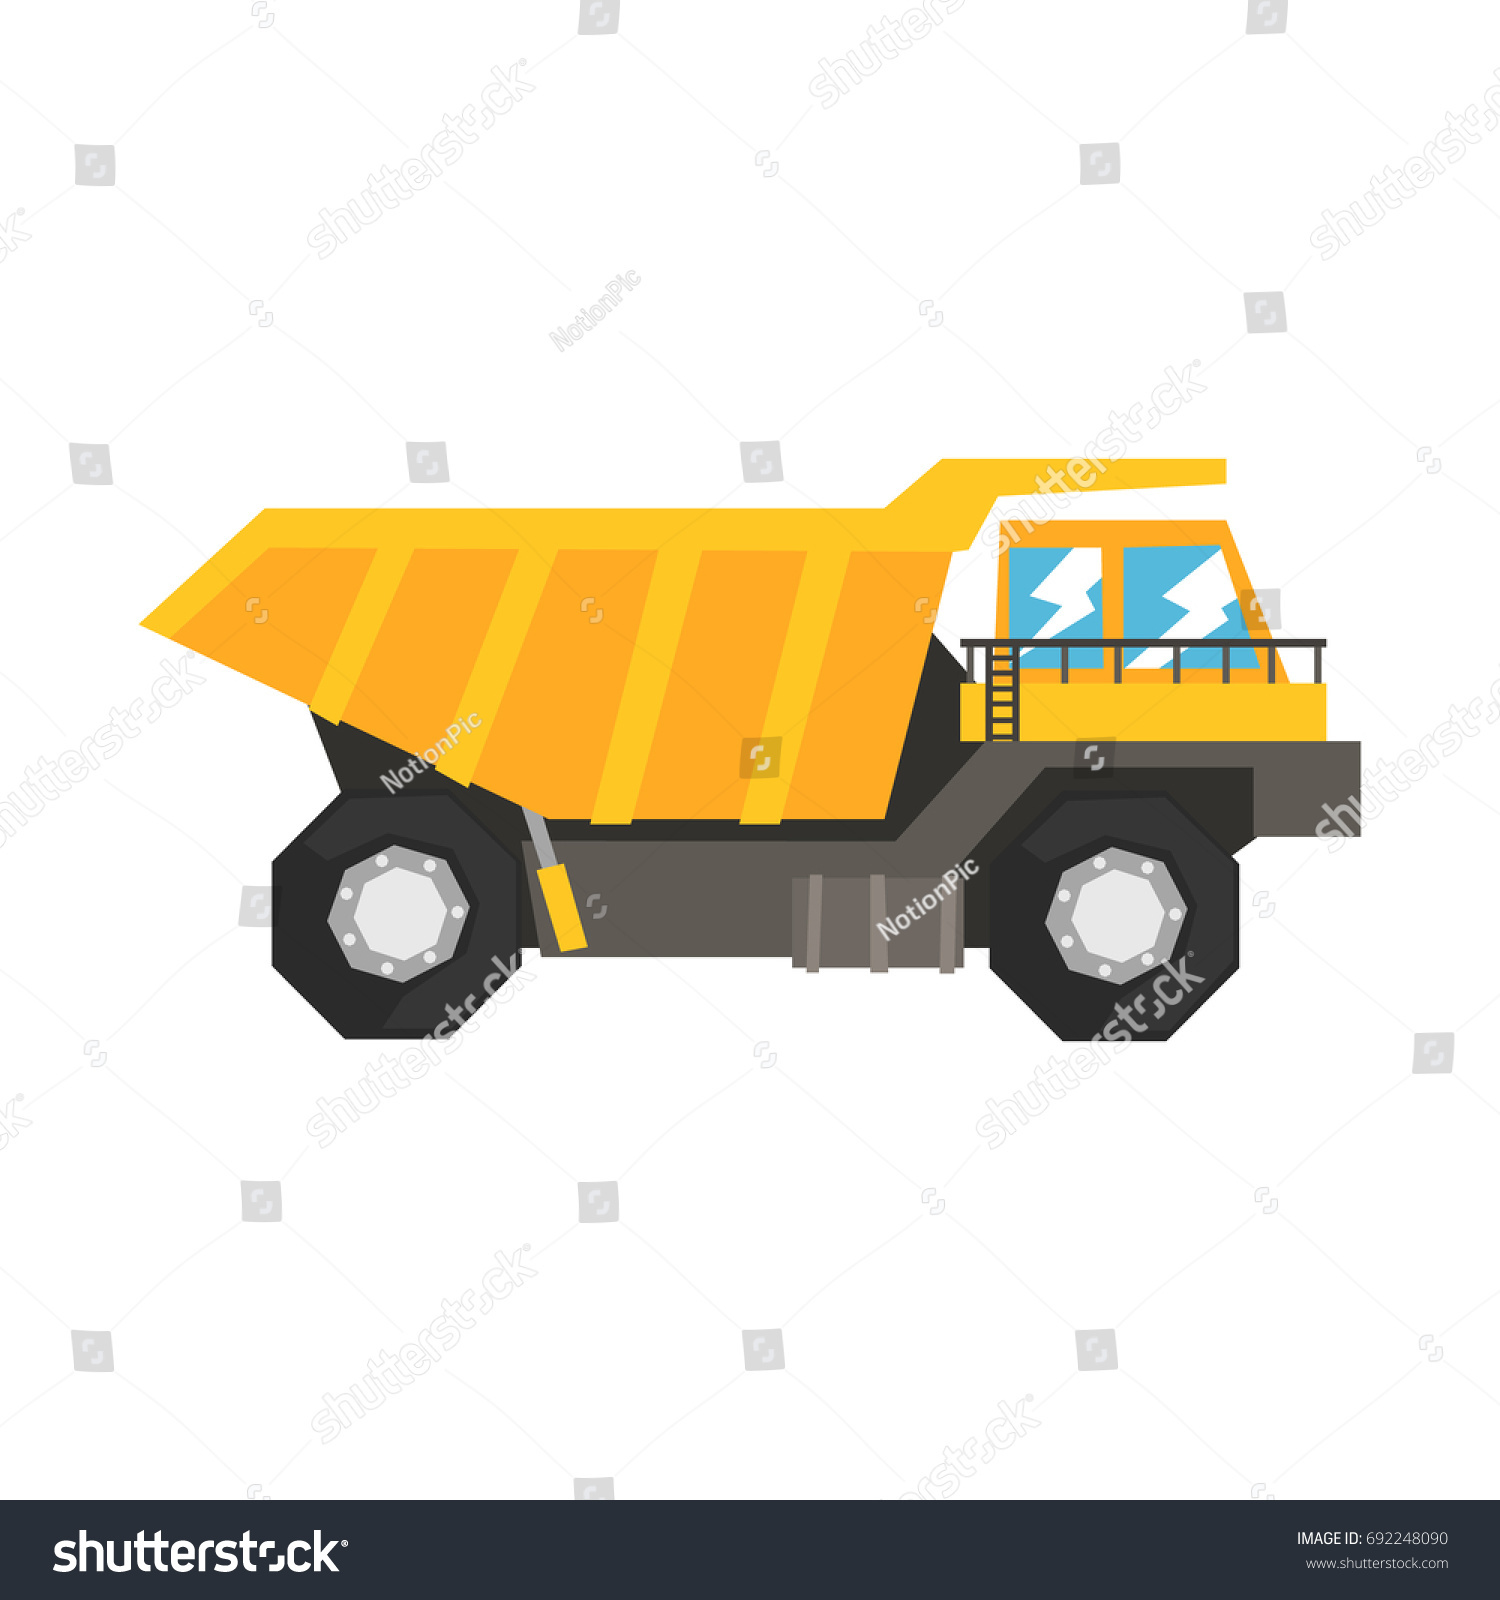 big yellow dump truck heavy industrial stock vector 692248090